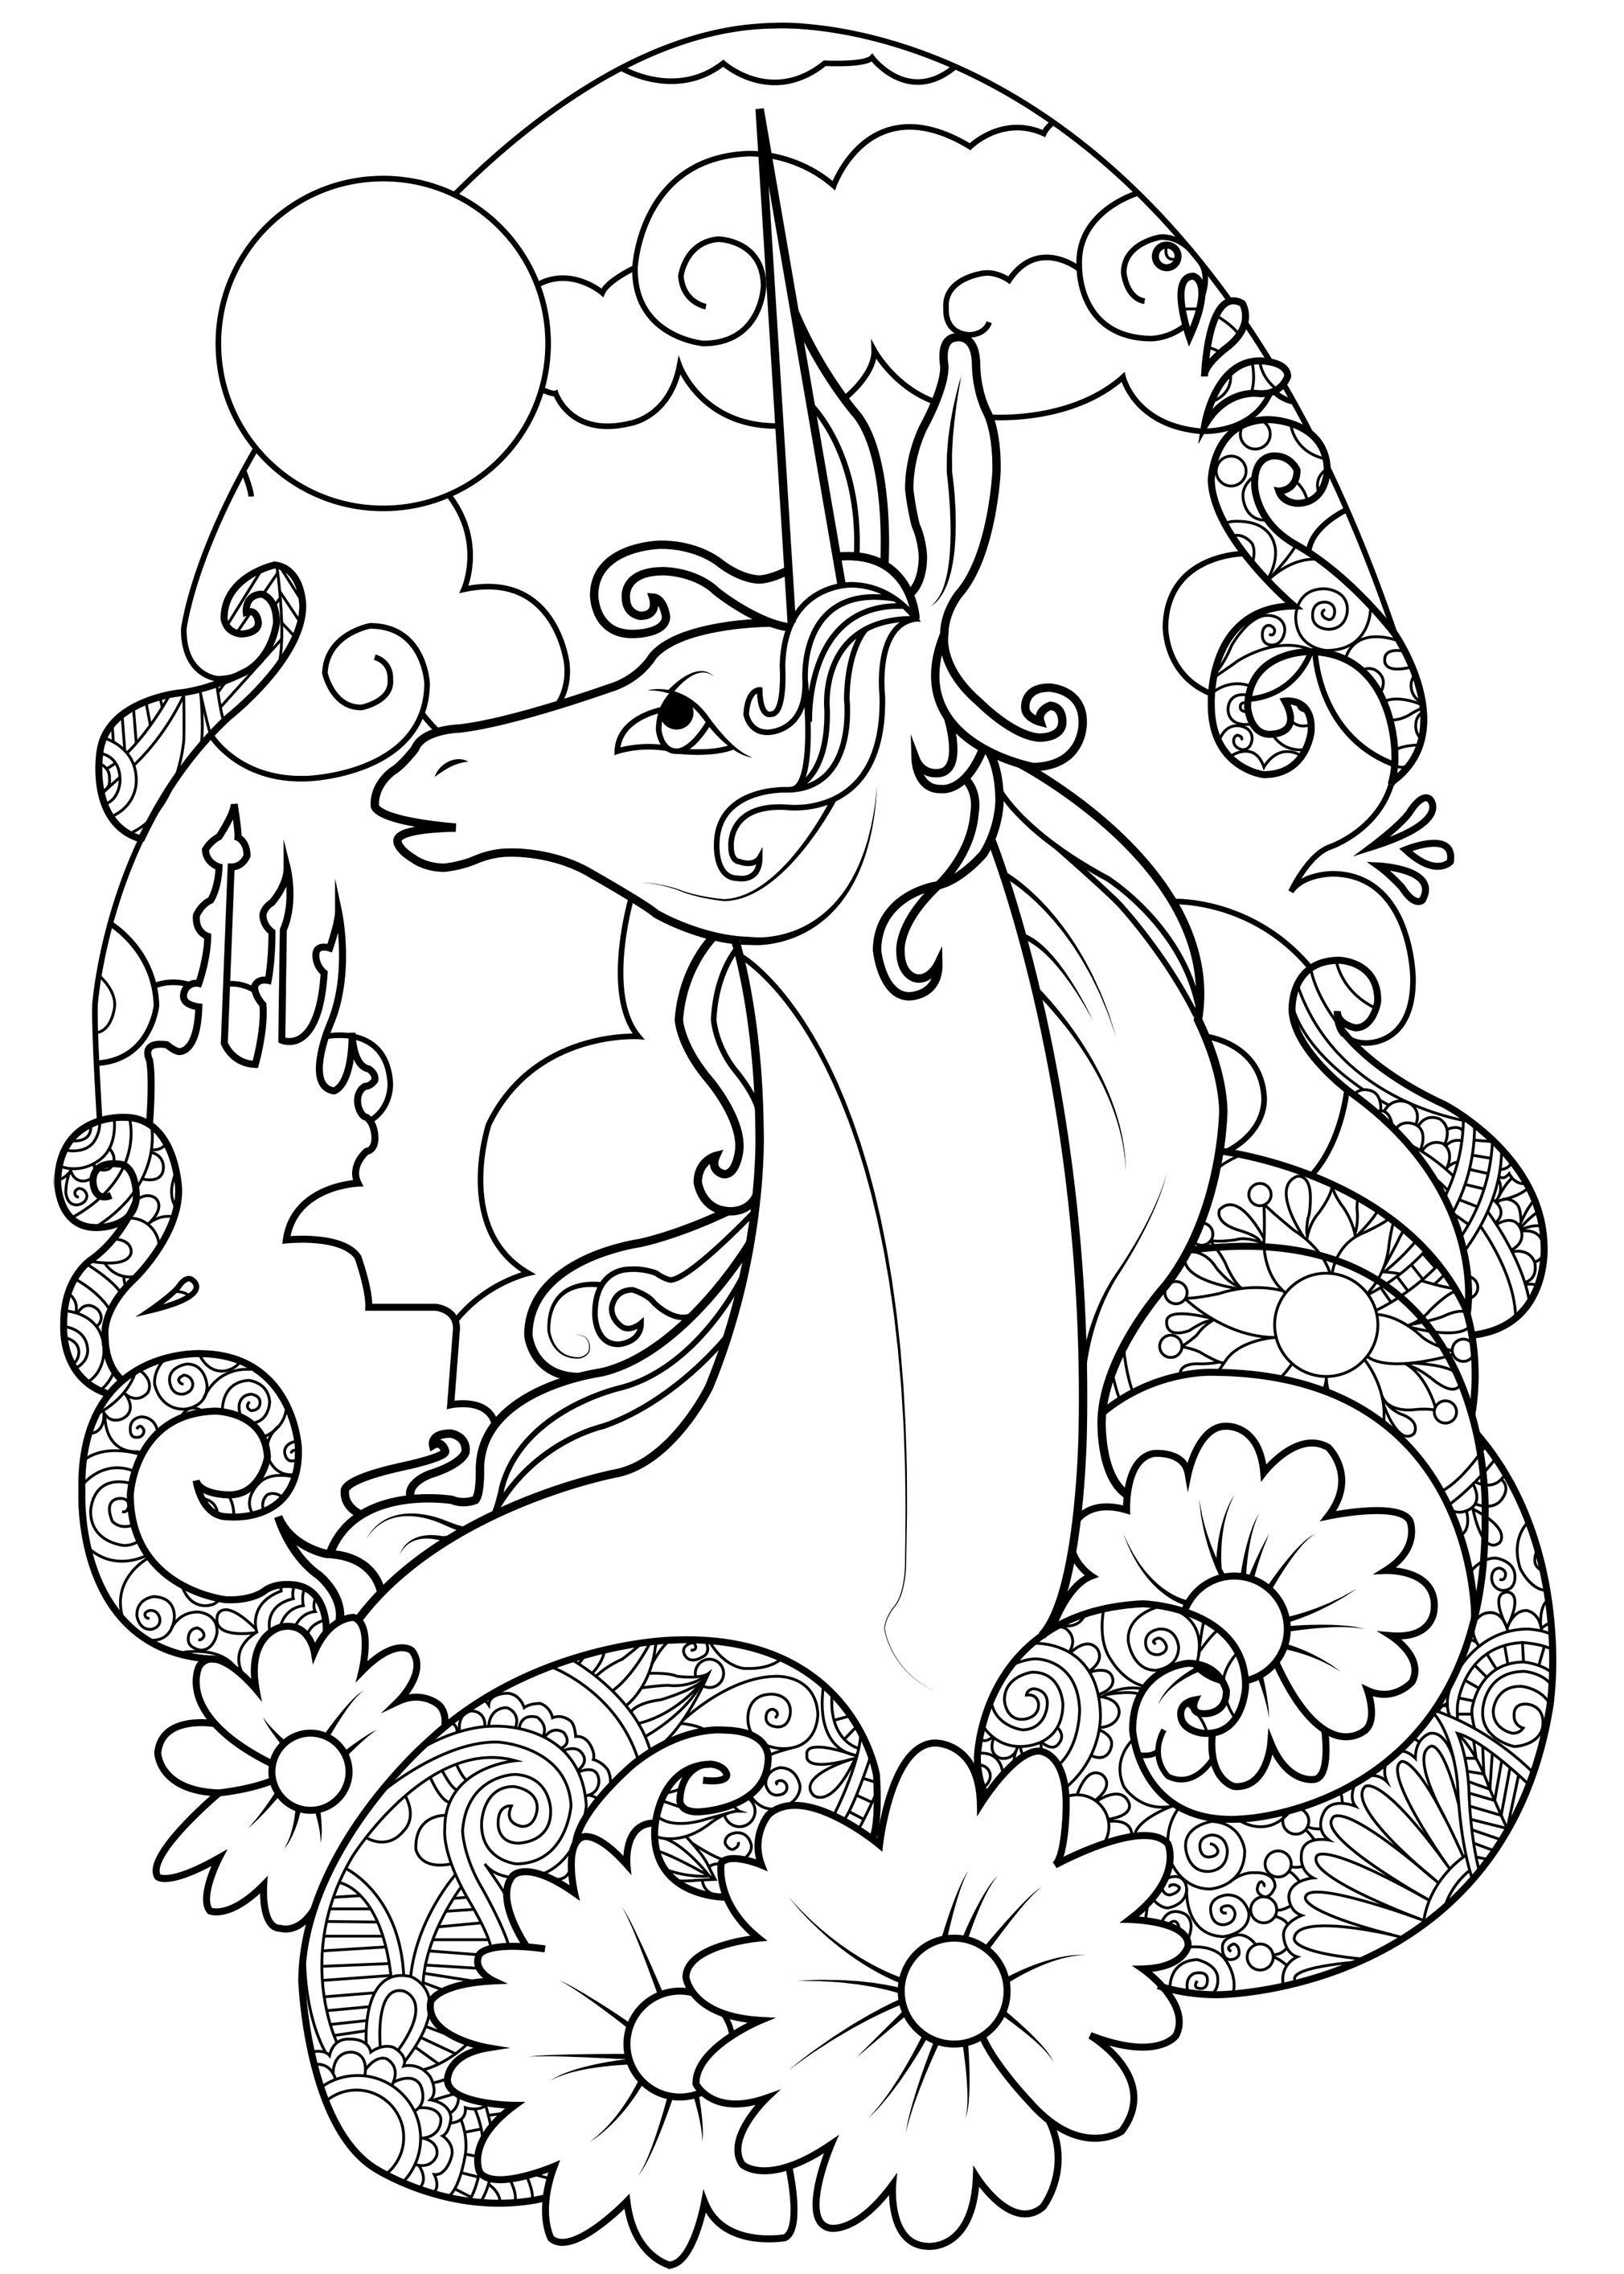 Fantasy Coloring Pages For Adults Elegant Coloring Freeaby Pegasus Unicorn Coloringest Pages F Unicorn Coloring Pages Detailed Coloring Pages Cat Coloring Book